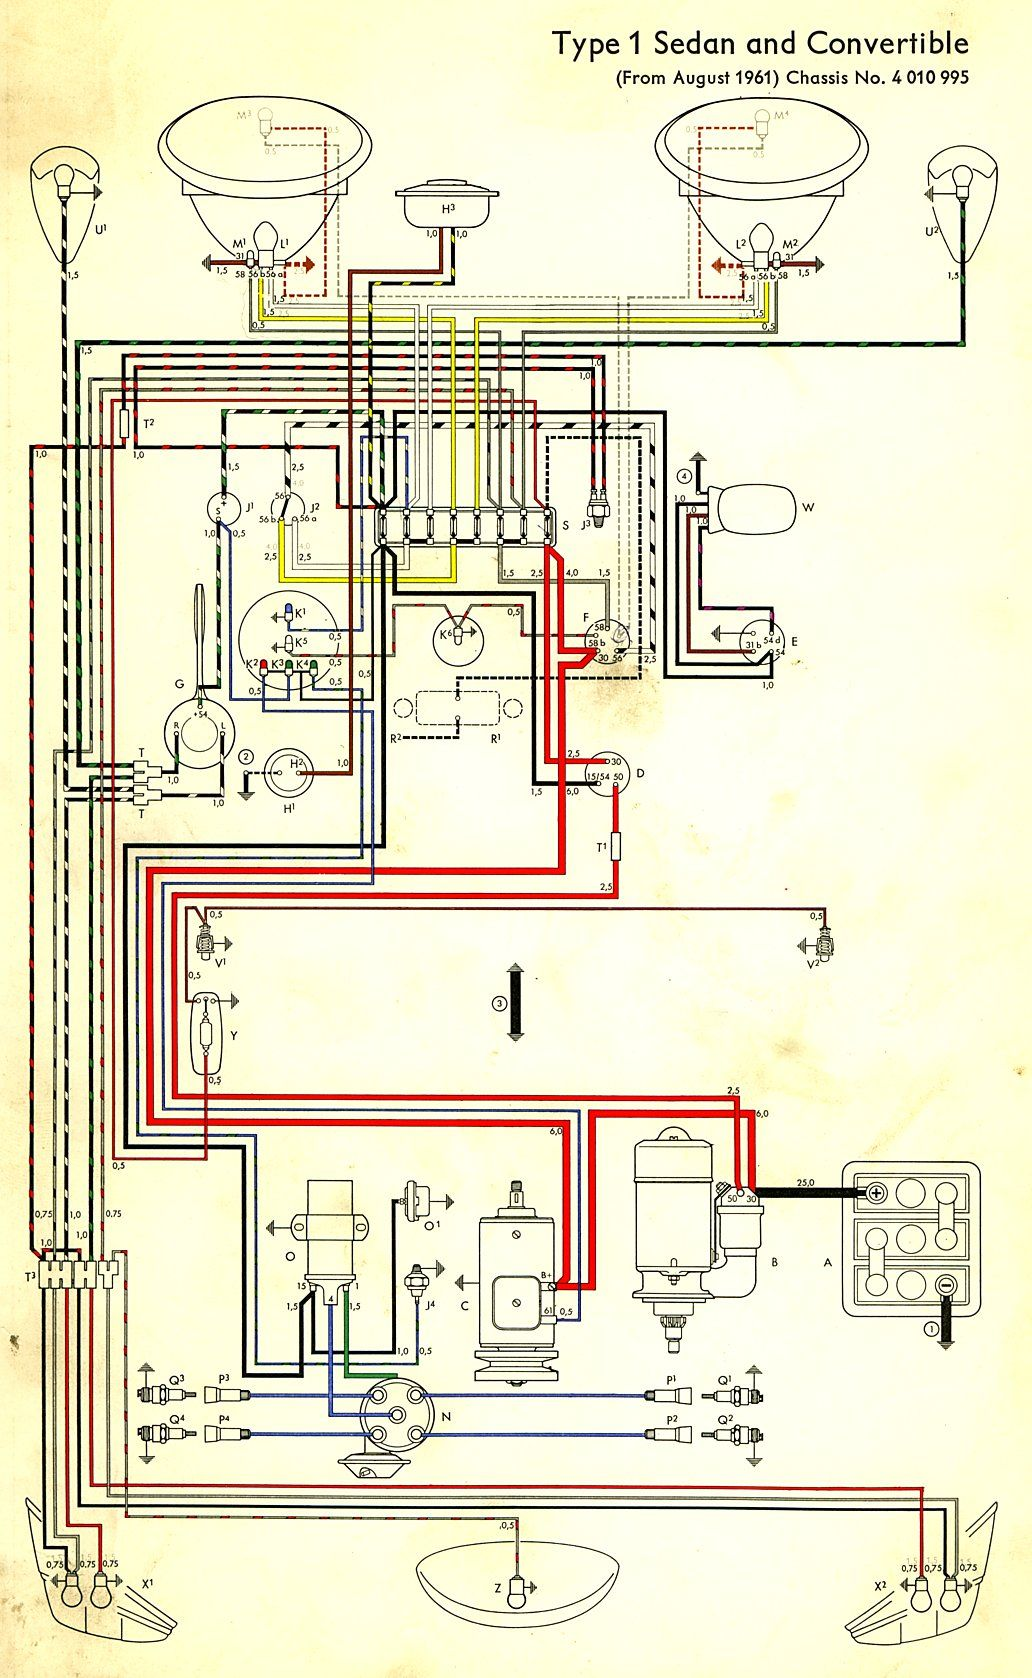 medium resolution of wiring diagram in color 1964 vw bug beetle convertible the samba 1964 vw beetle wiring diagram 1964 volkswagen wiring diagram